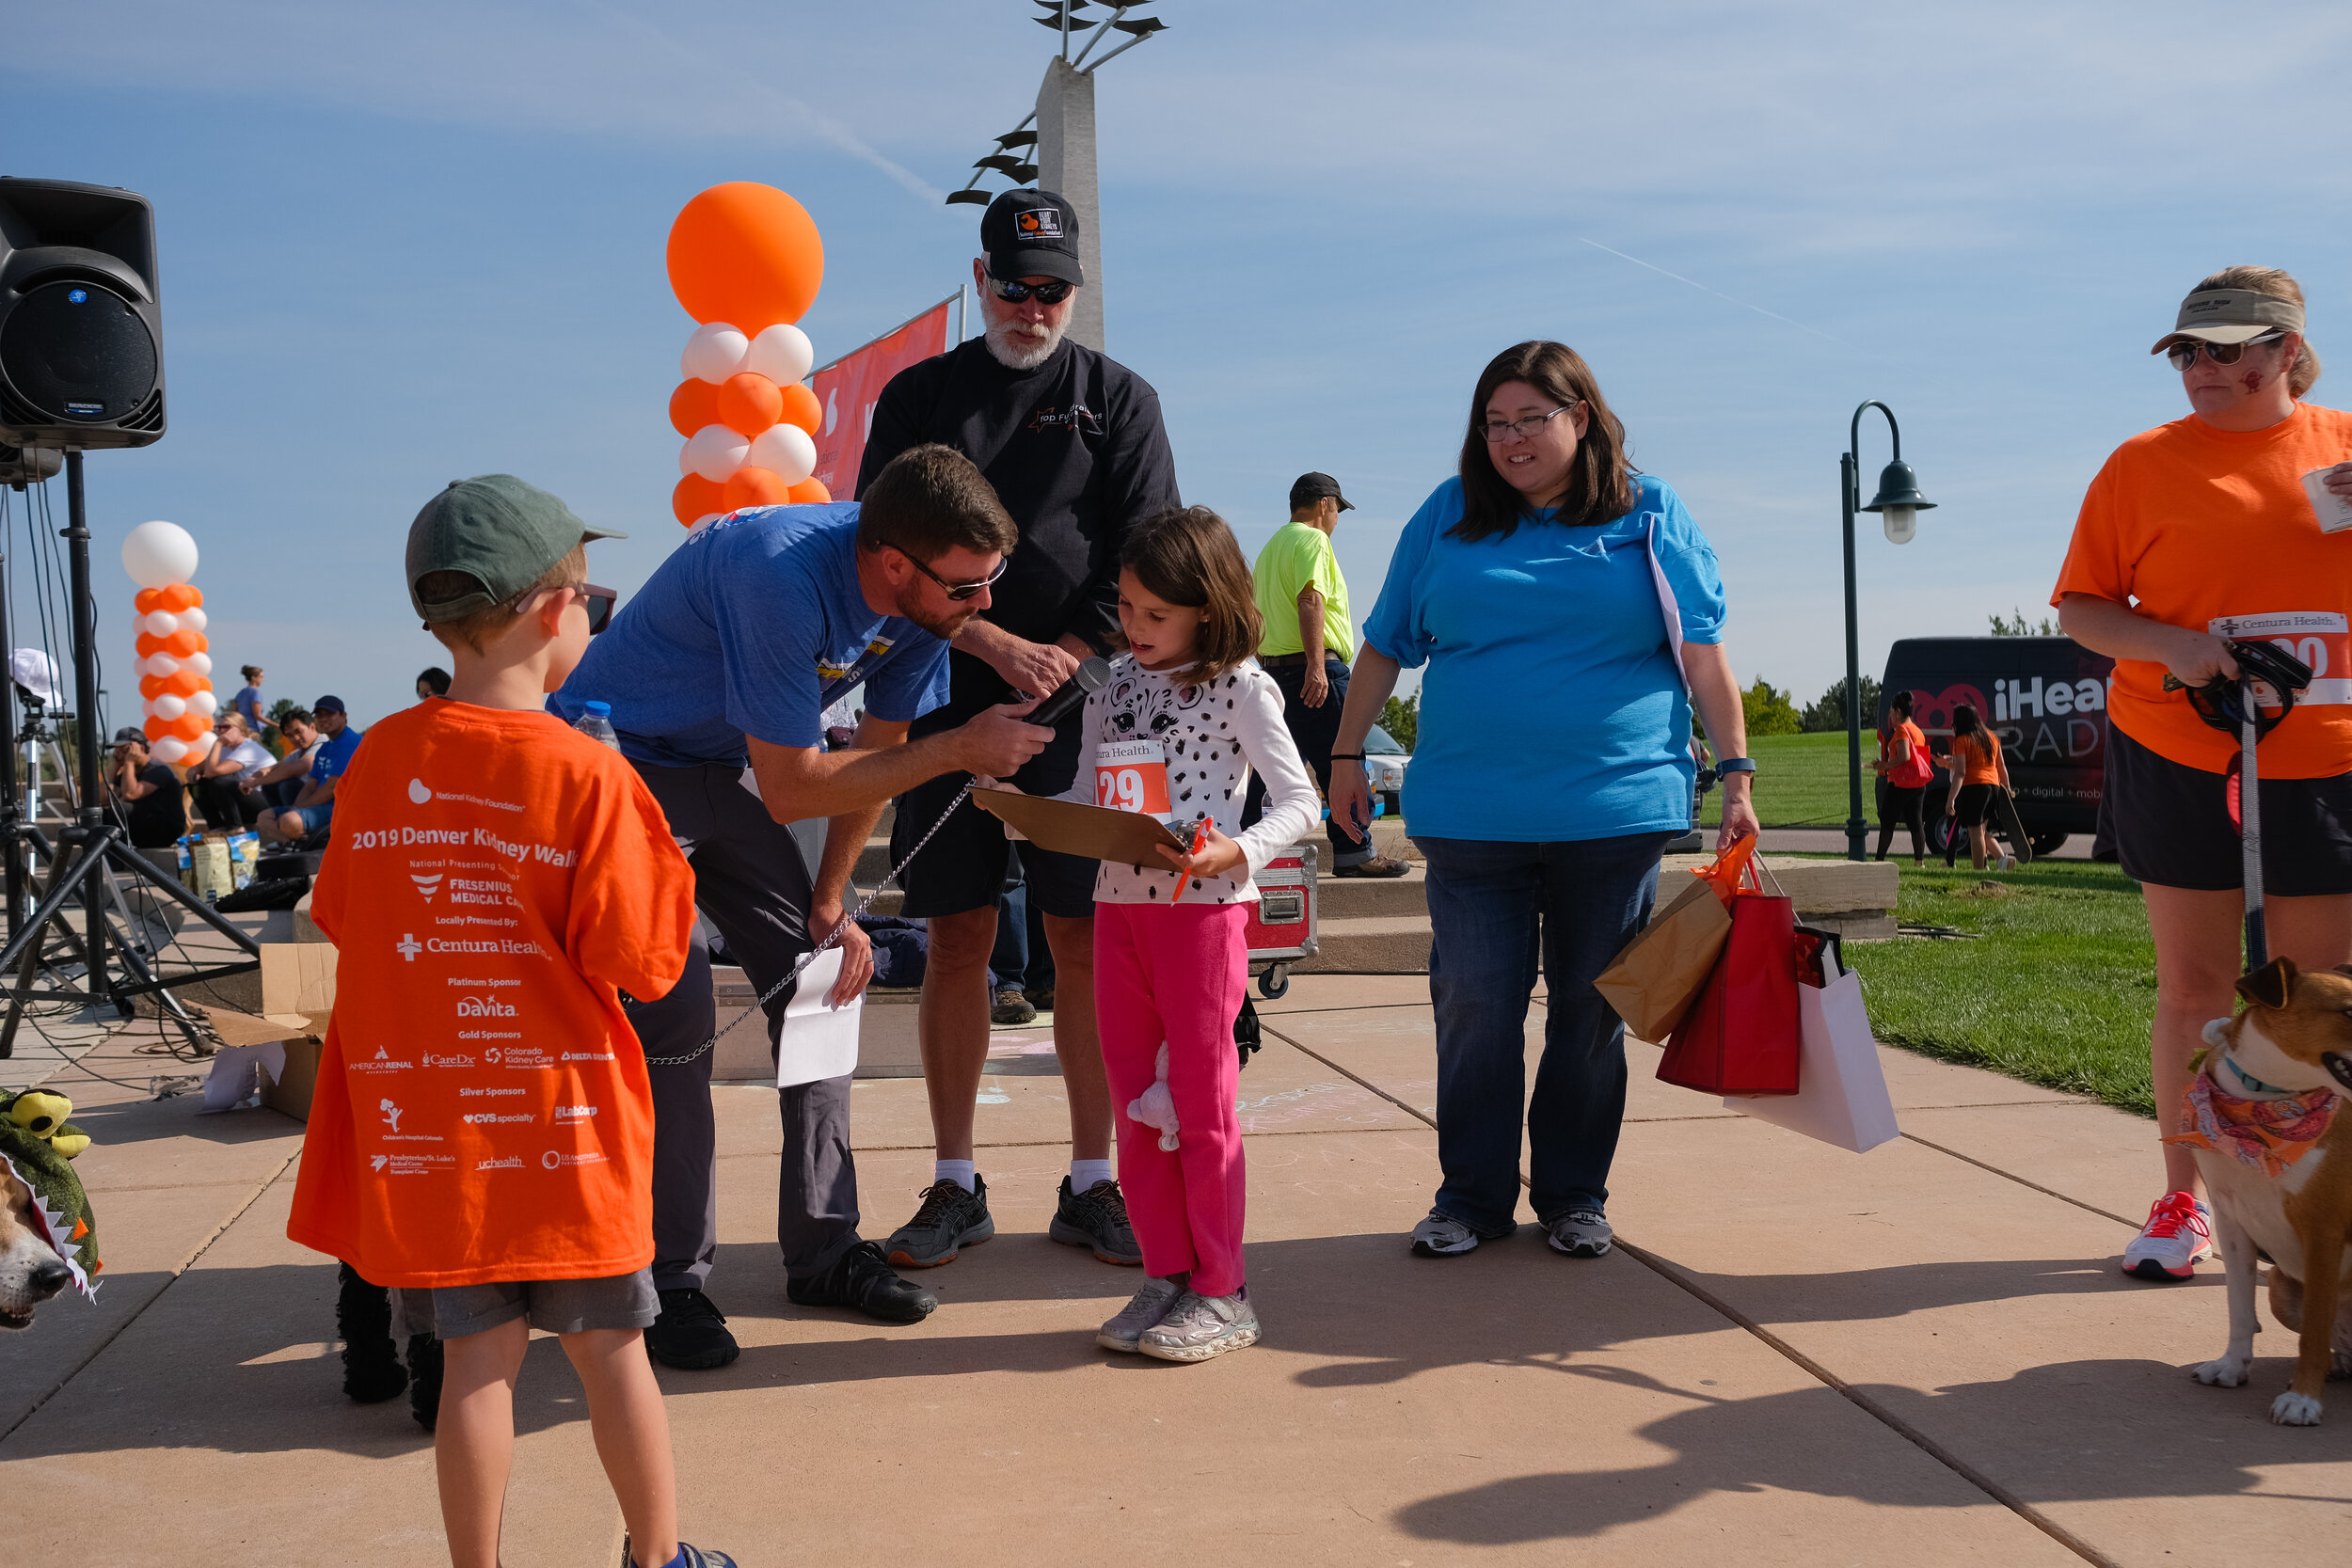 Denver Kidney Walk-225.jpg